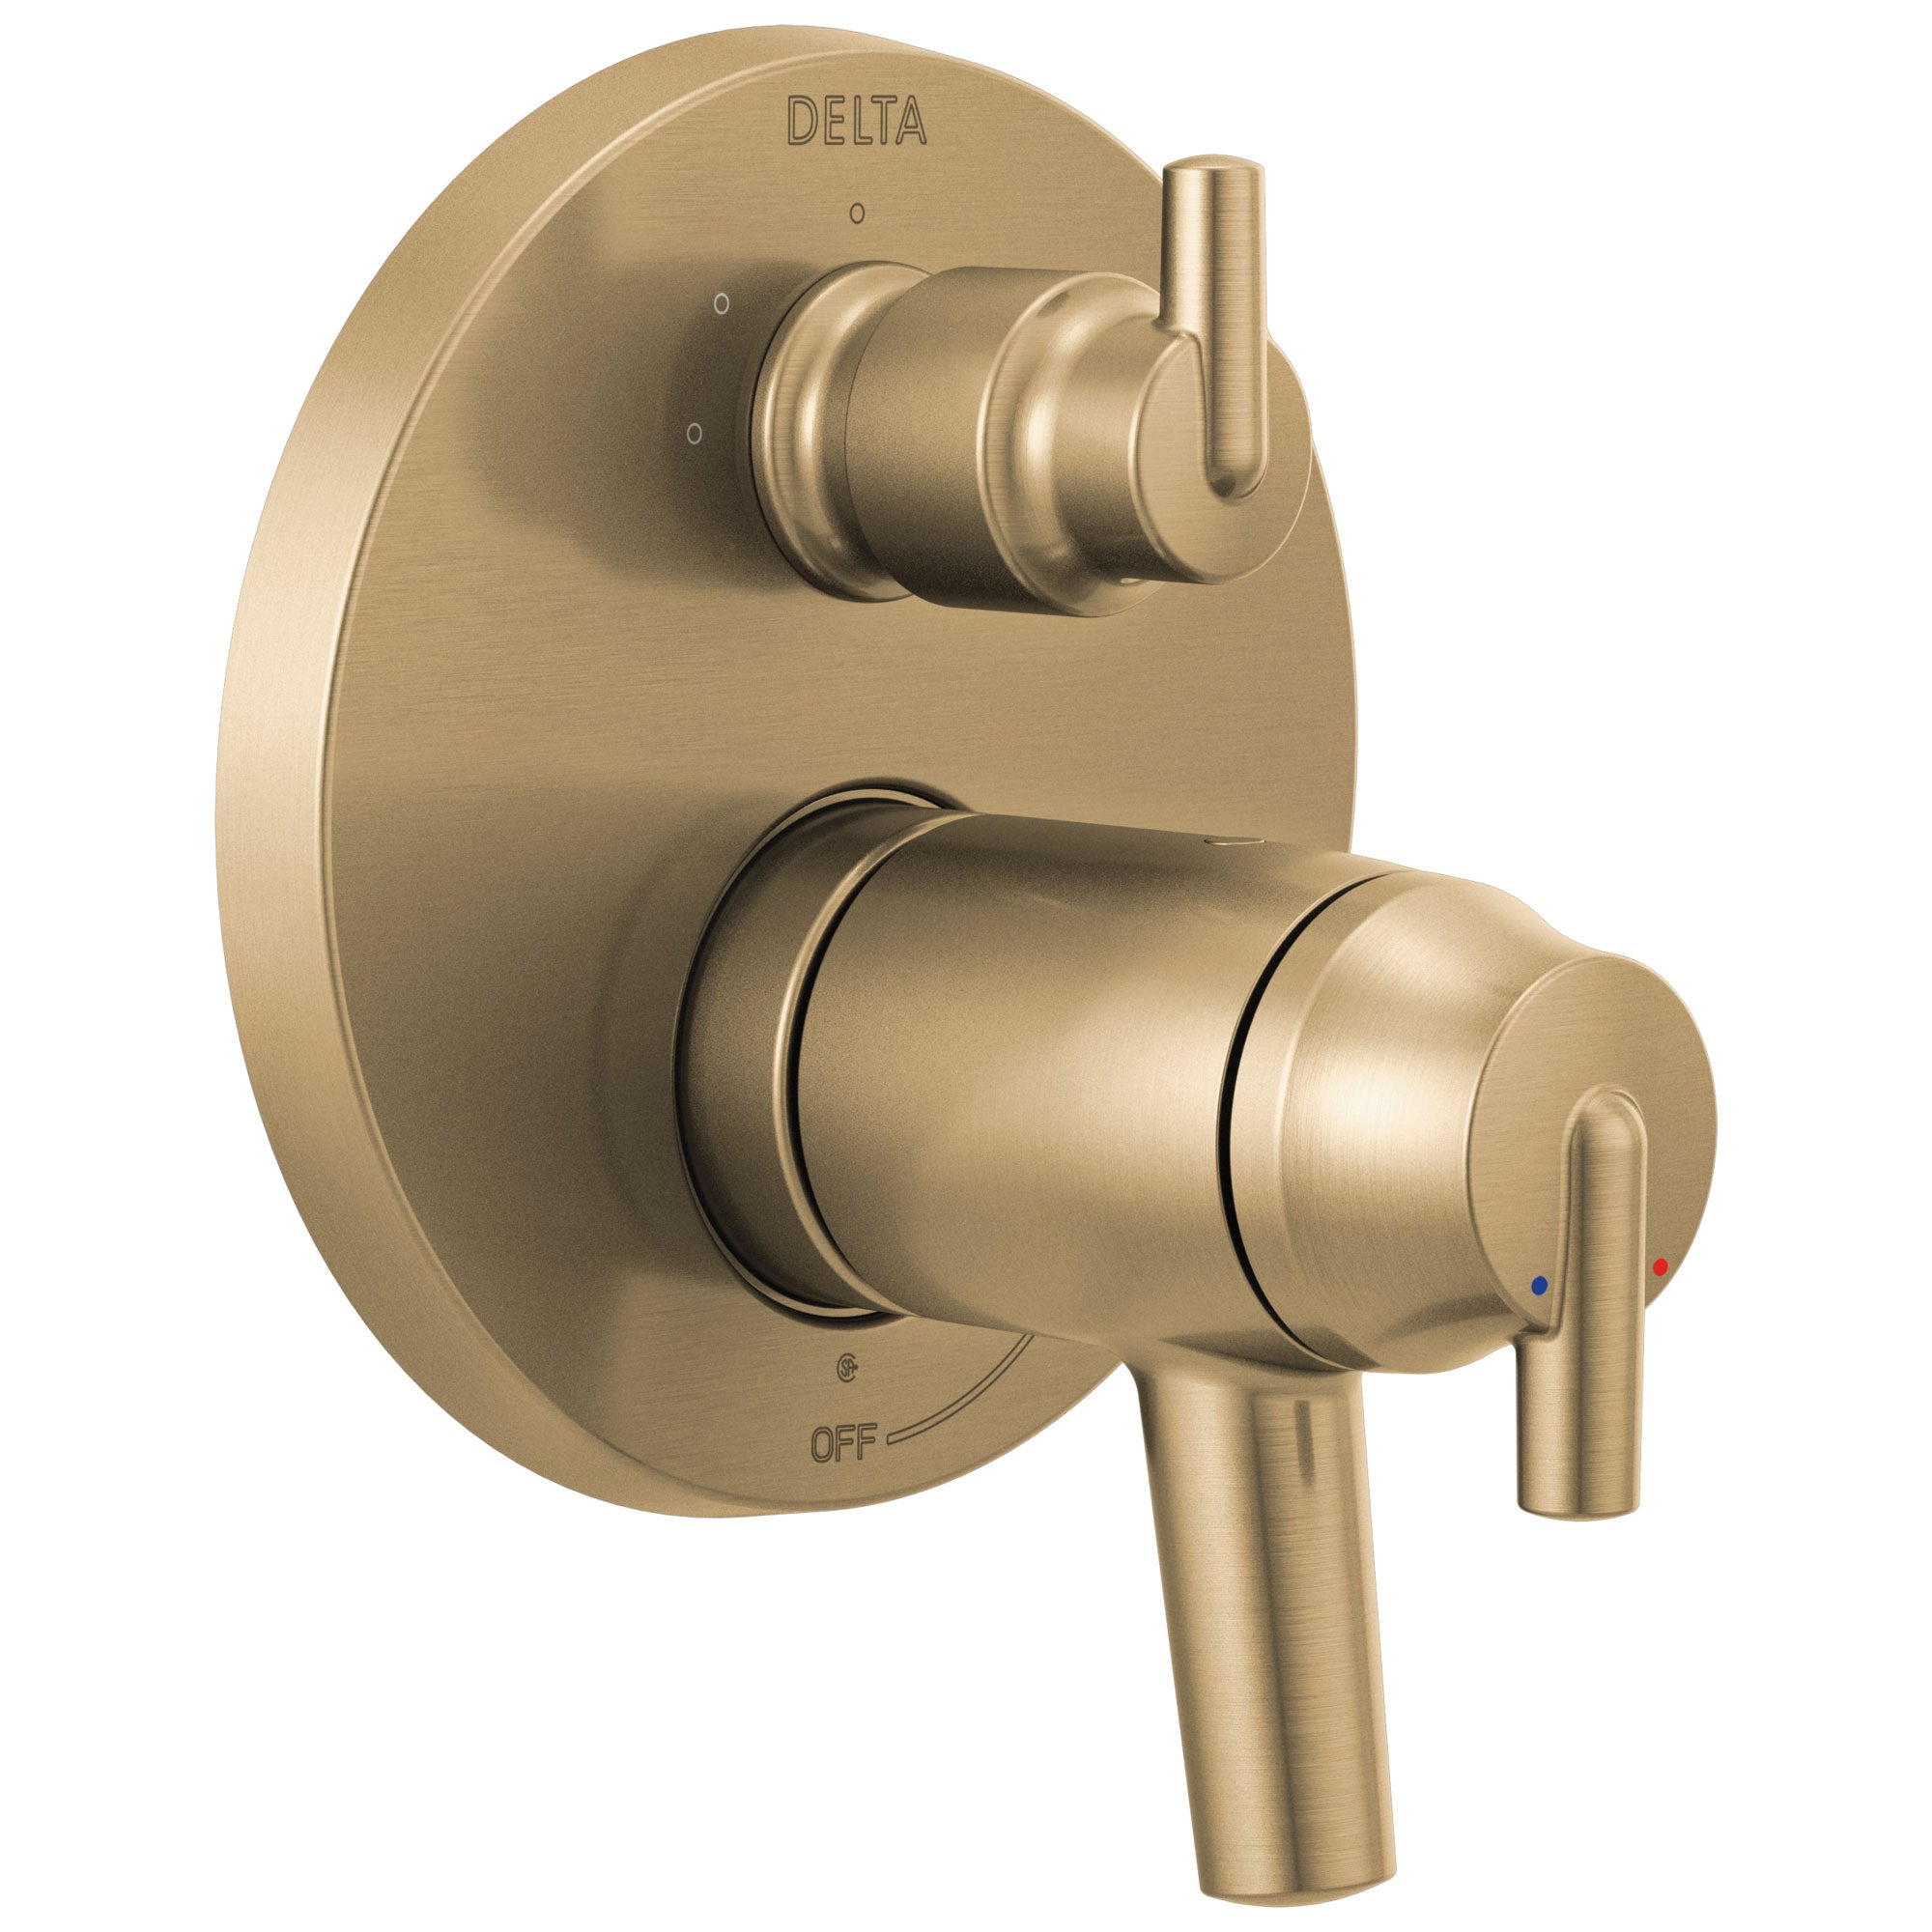 Delta Trinsic Champagne Bronze Finish Modern Thermostatic Shower Faucet Control with 3-Setting Integrated Diverter Includes Valve and Handles D3694V